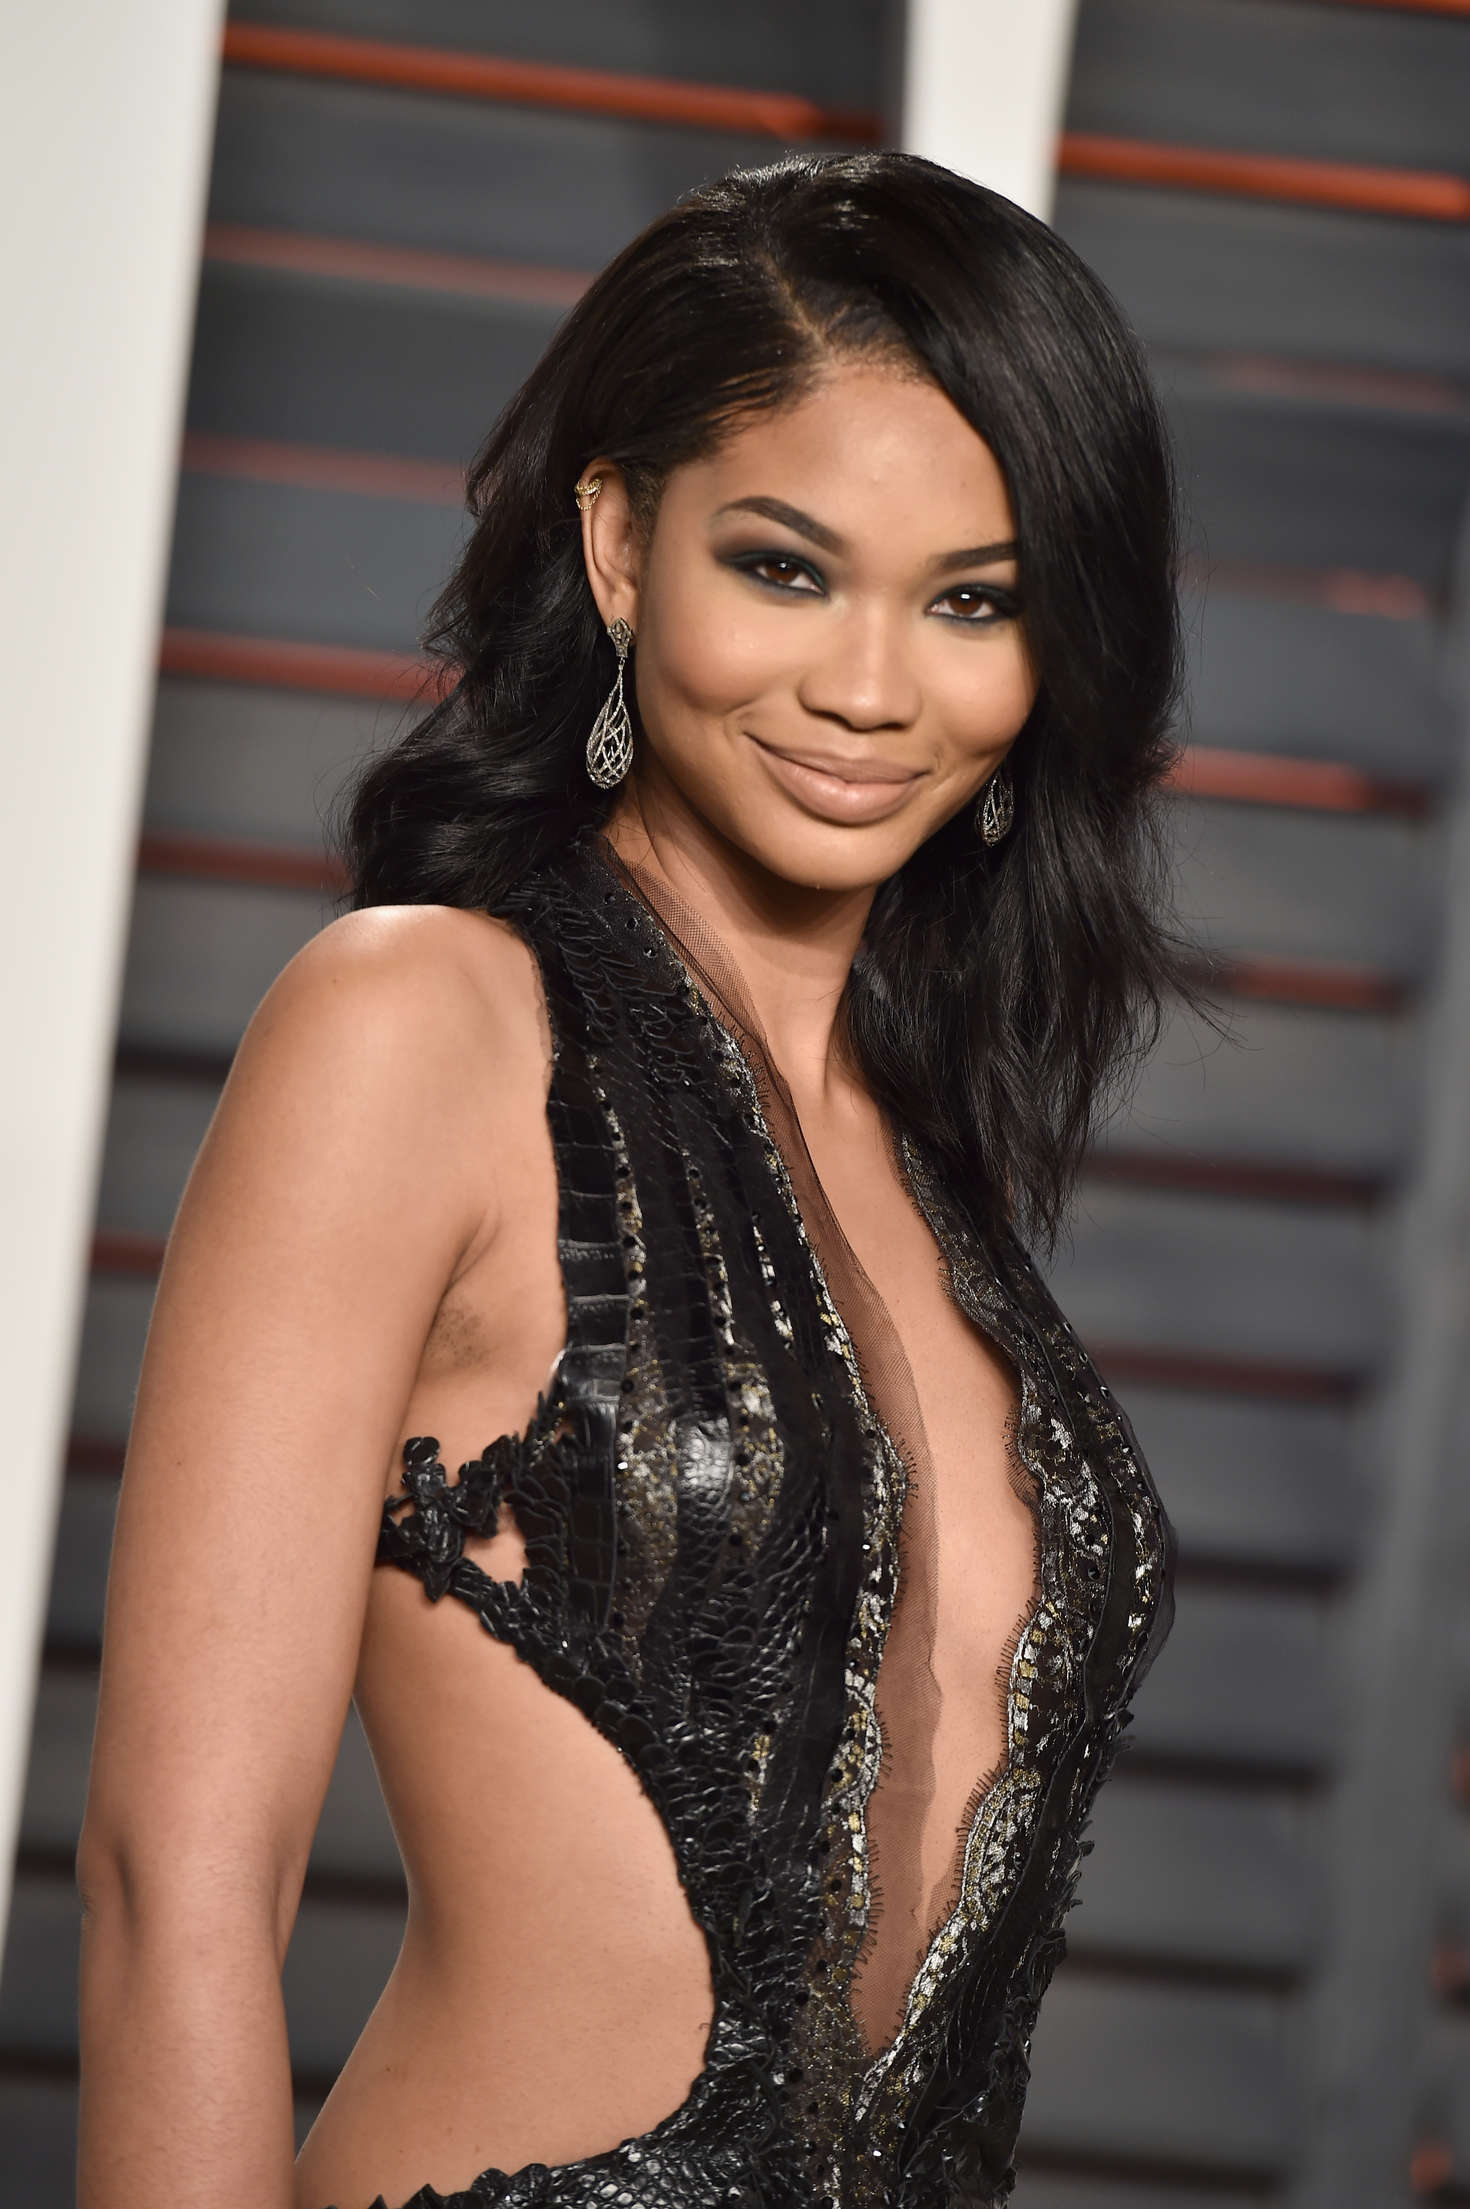 Chanel iman your dream about me 7